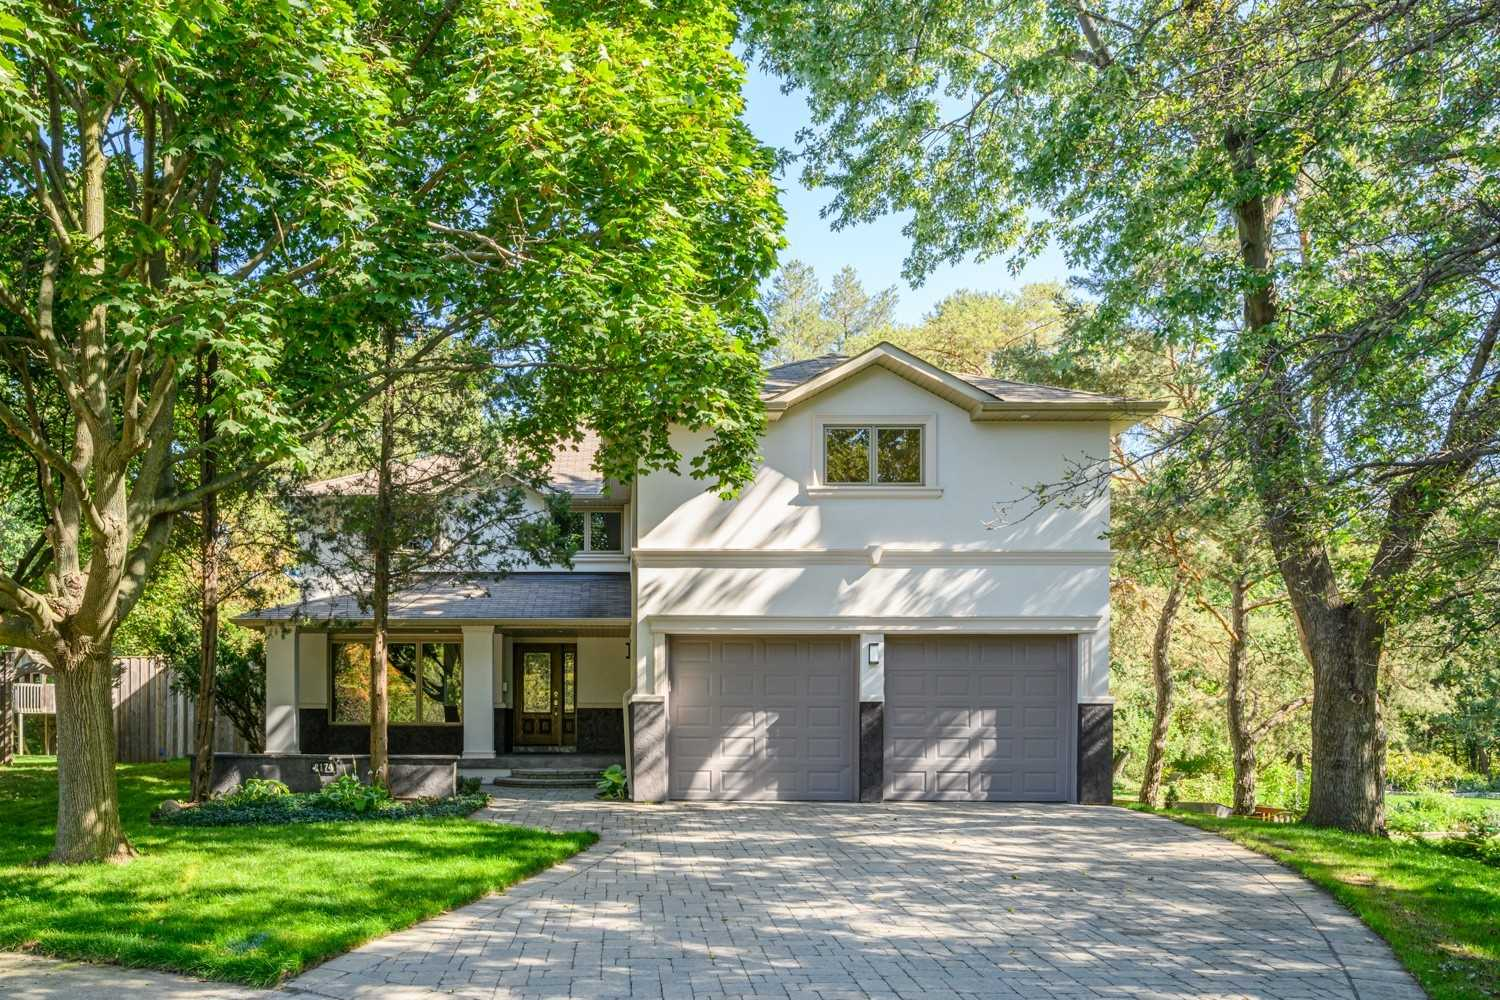 Detached house For Lease In Mississauga - 2174 Burbank Dr, Mississauga, Ontario, Canada L5L2T8 , 5 Bedrooms Bedrooms, ,5 BathroomsBathrooms,Detached,For Lease,Burbank